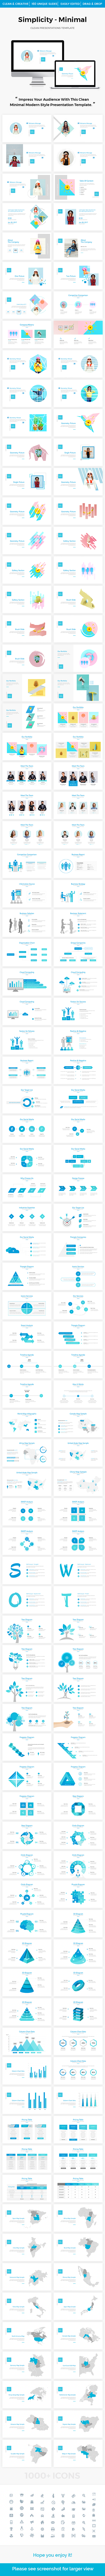 GraphicRiver Simplicity Minimal Google Slide Template 2018 21123868